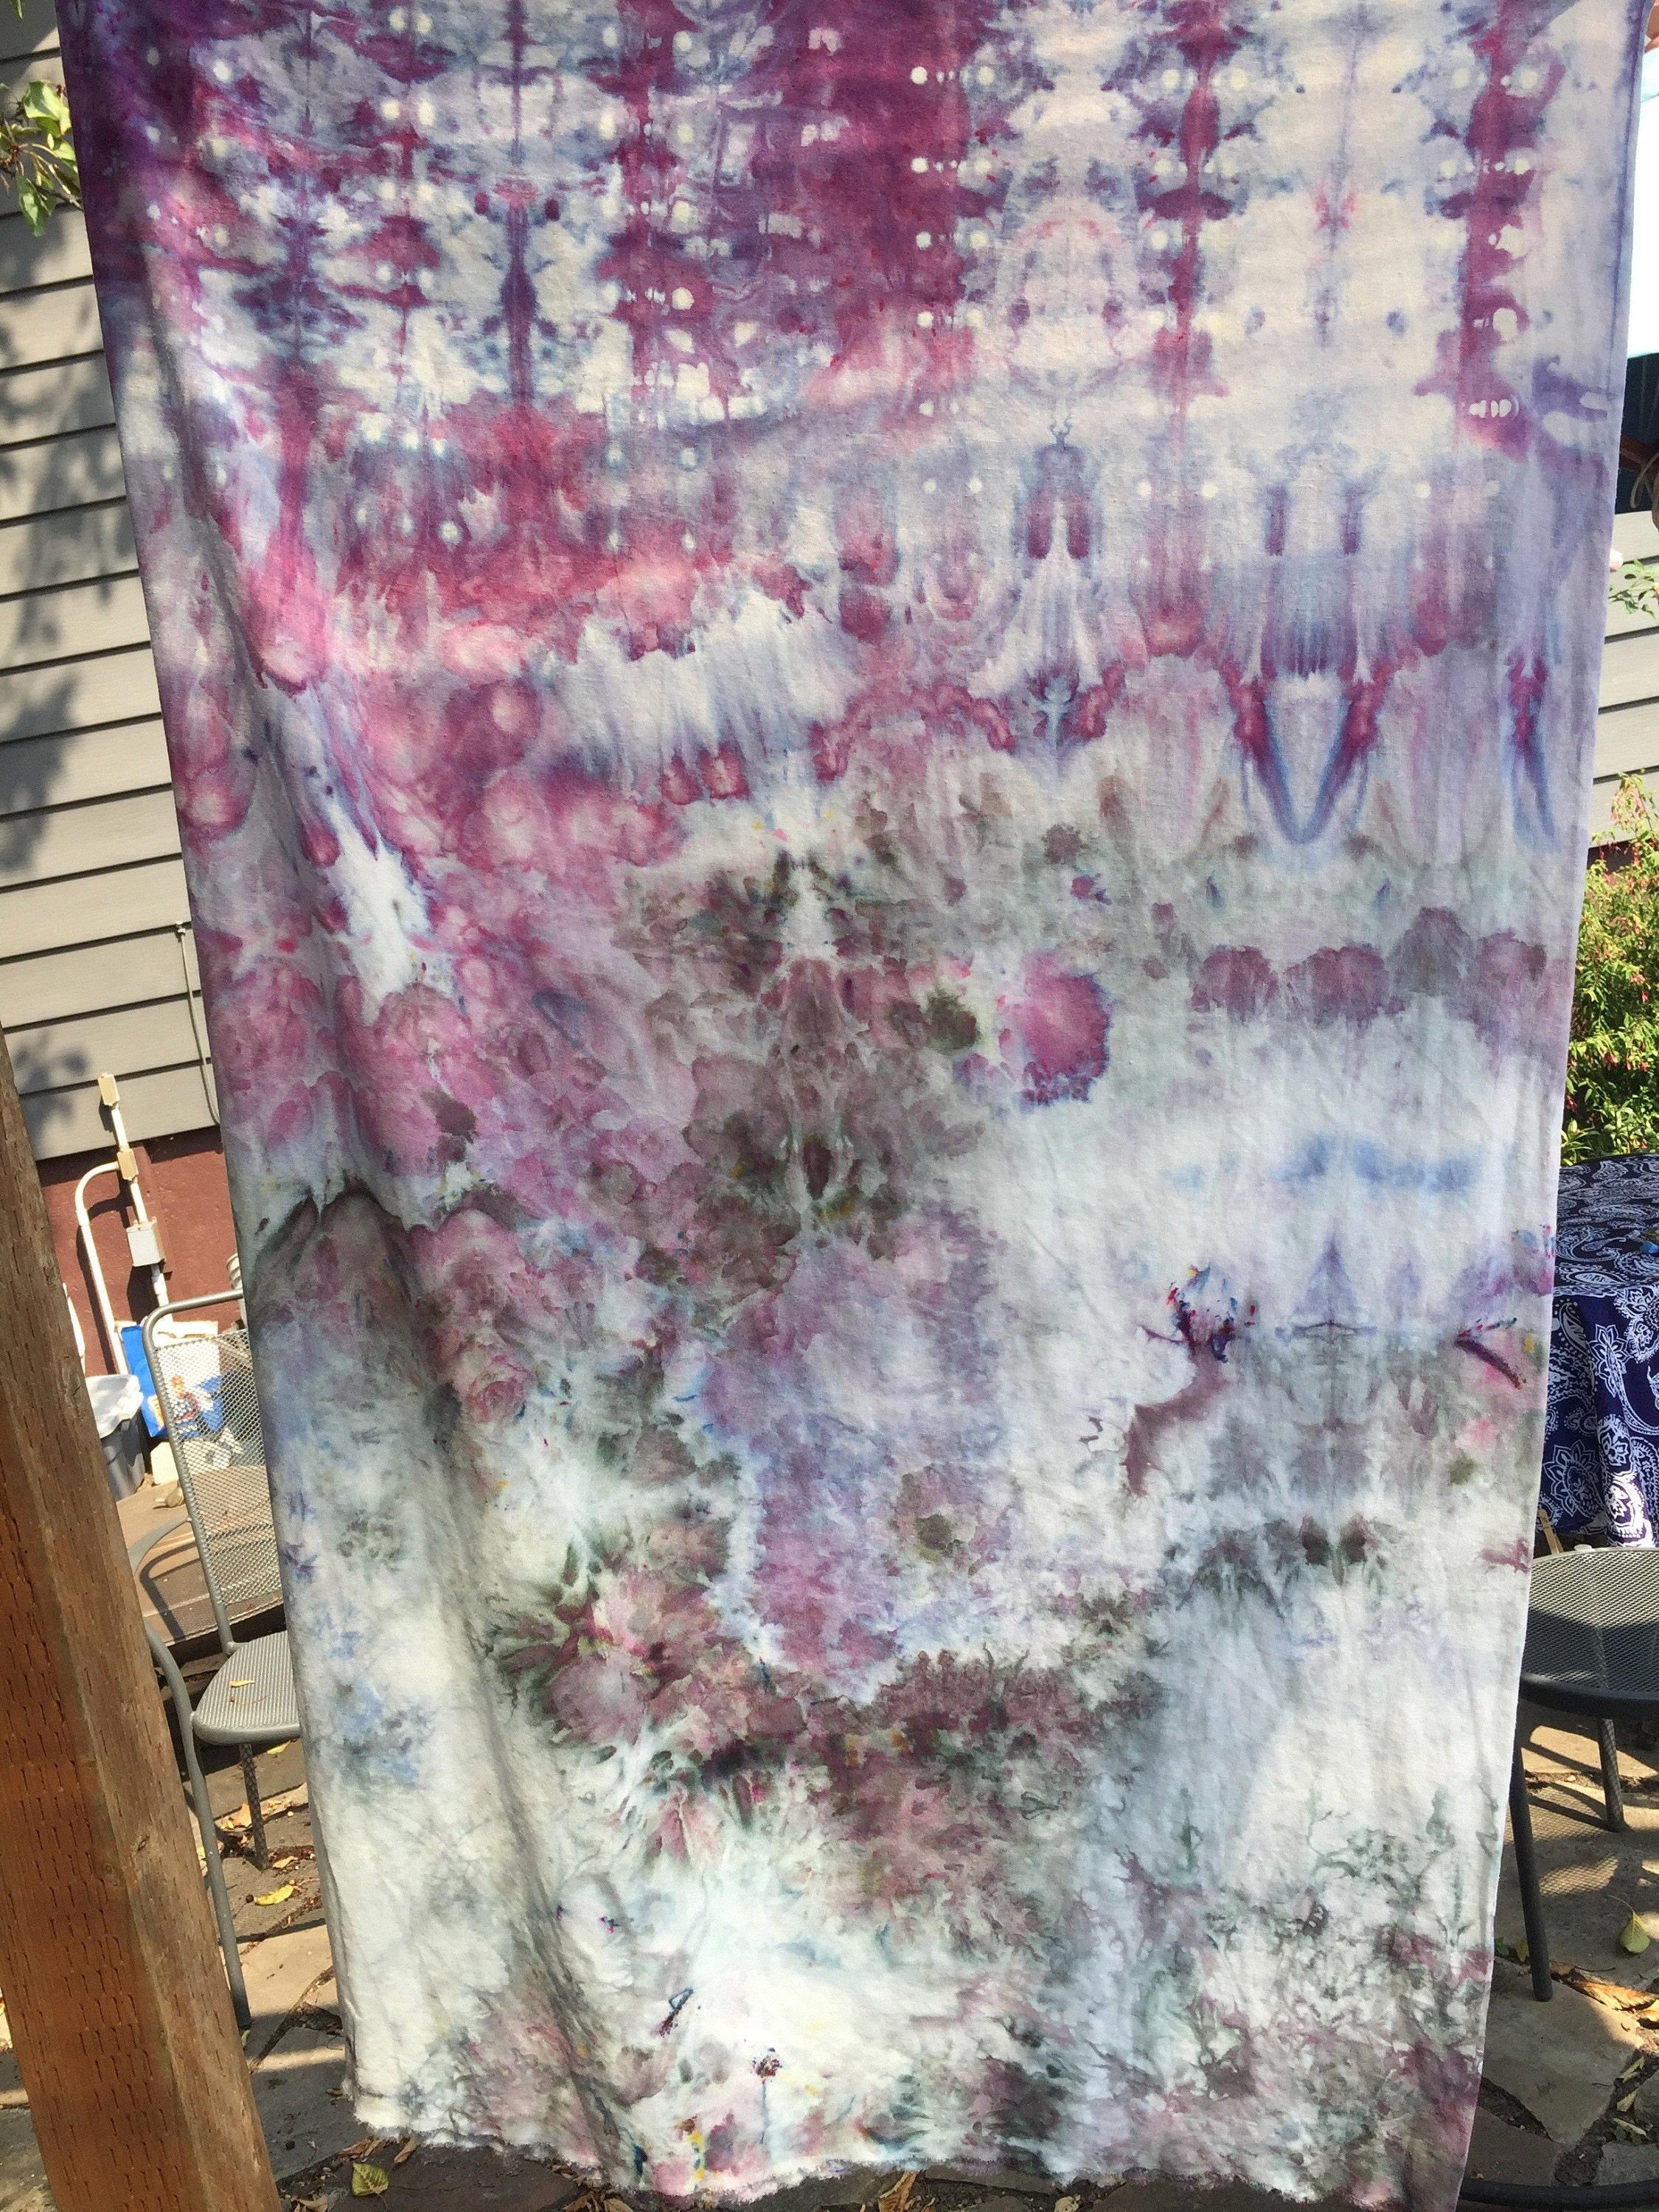 The whole cloth, two dye colors - Hydranga and Charcoal Gray